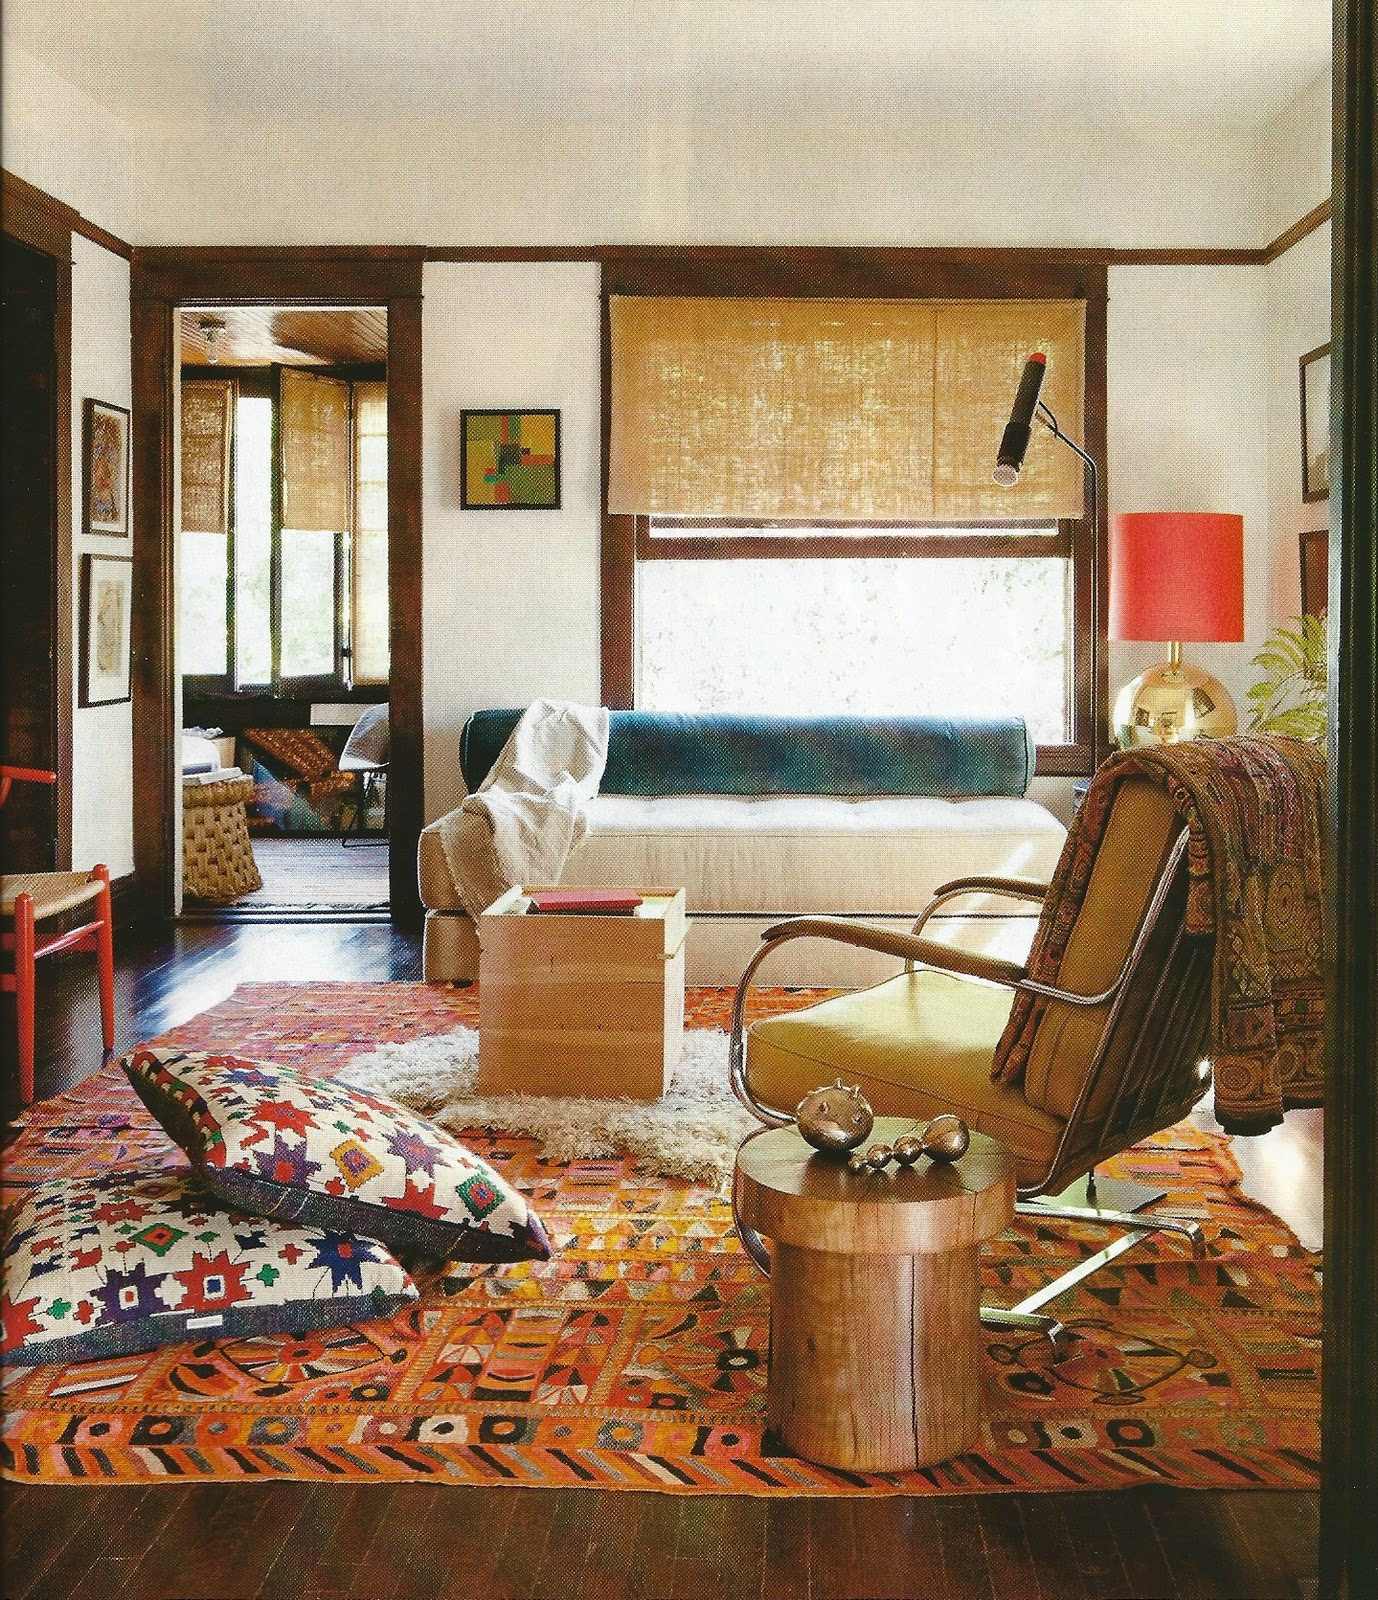 8 Eclectic Decorating Ideas That Go Together | GlobeIn